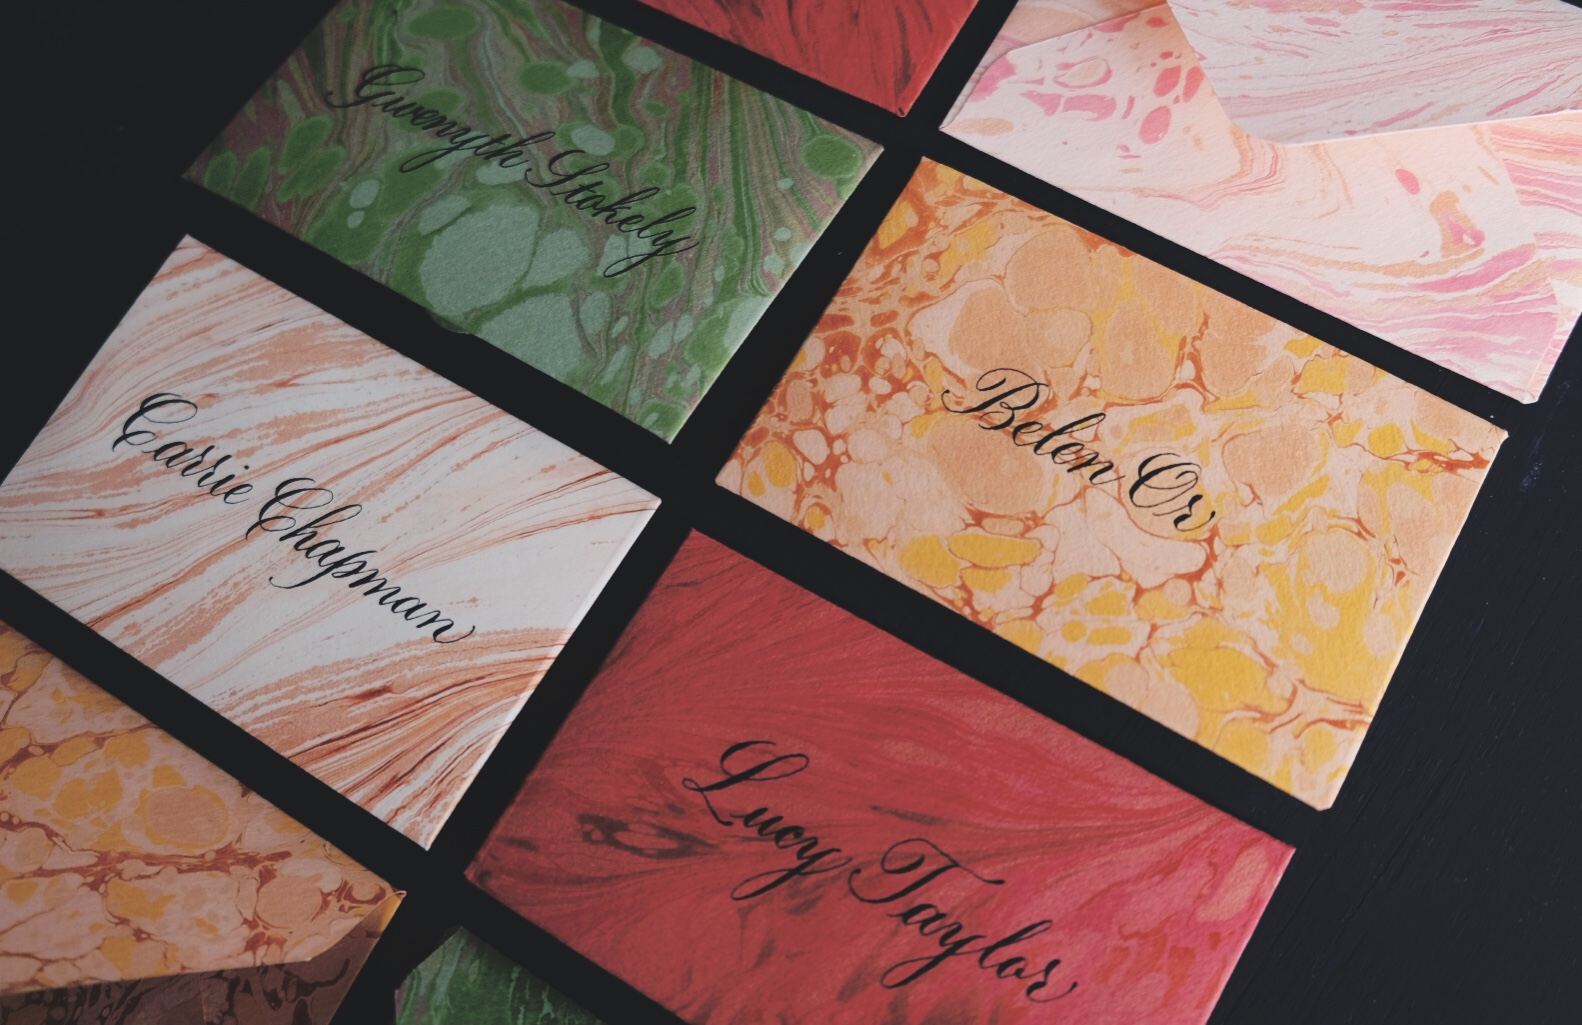 Custom marbled envelopes as escort cards with classic copperplate script calligraphy // by Chavelli www.chavelli.com